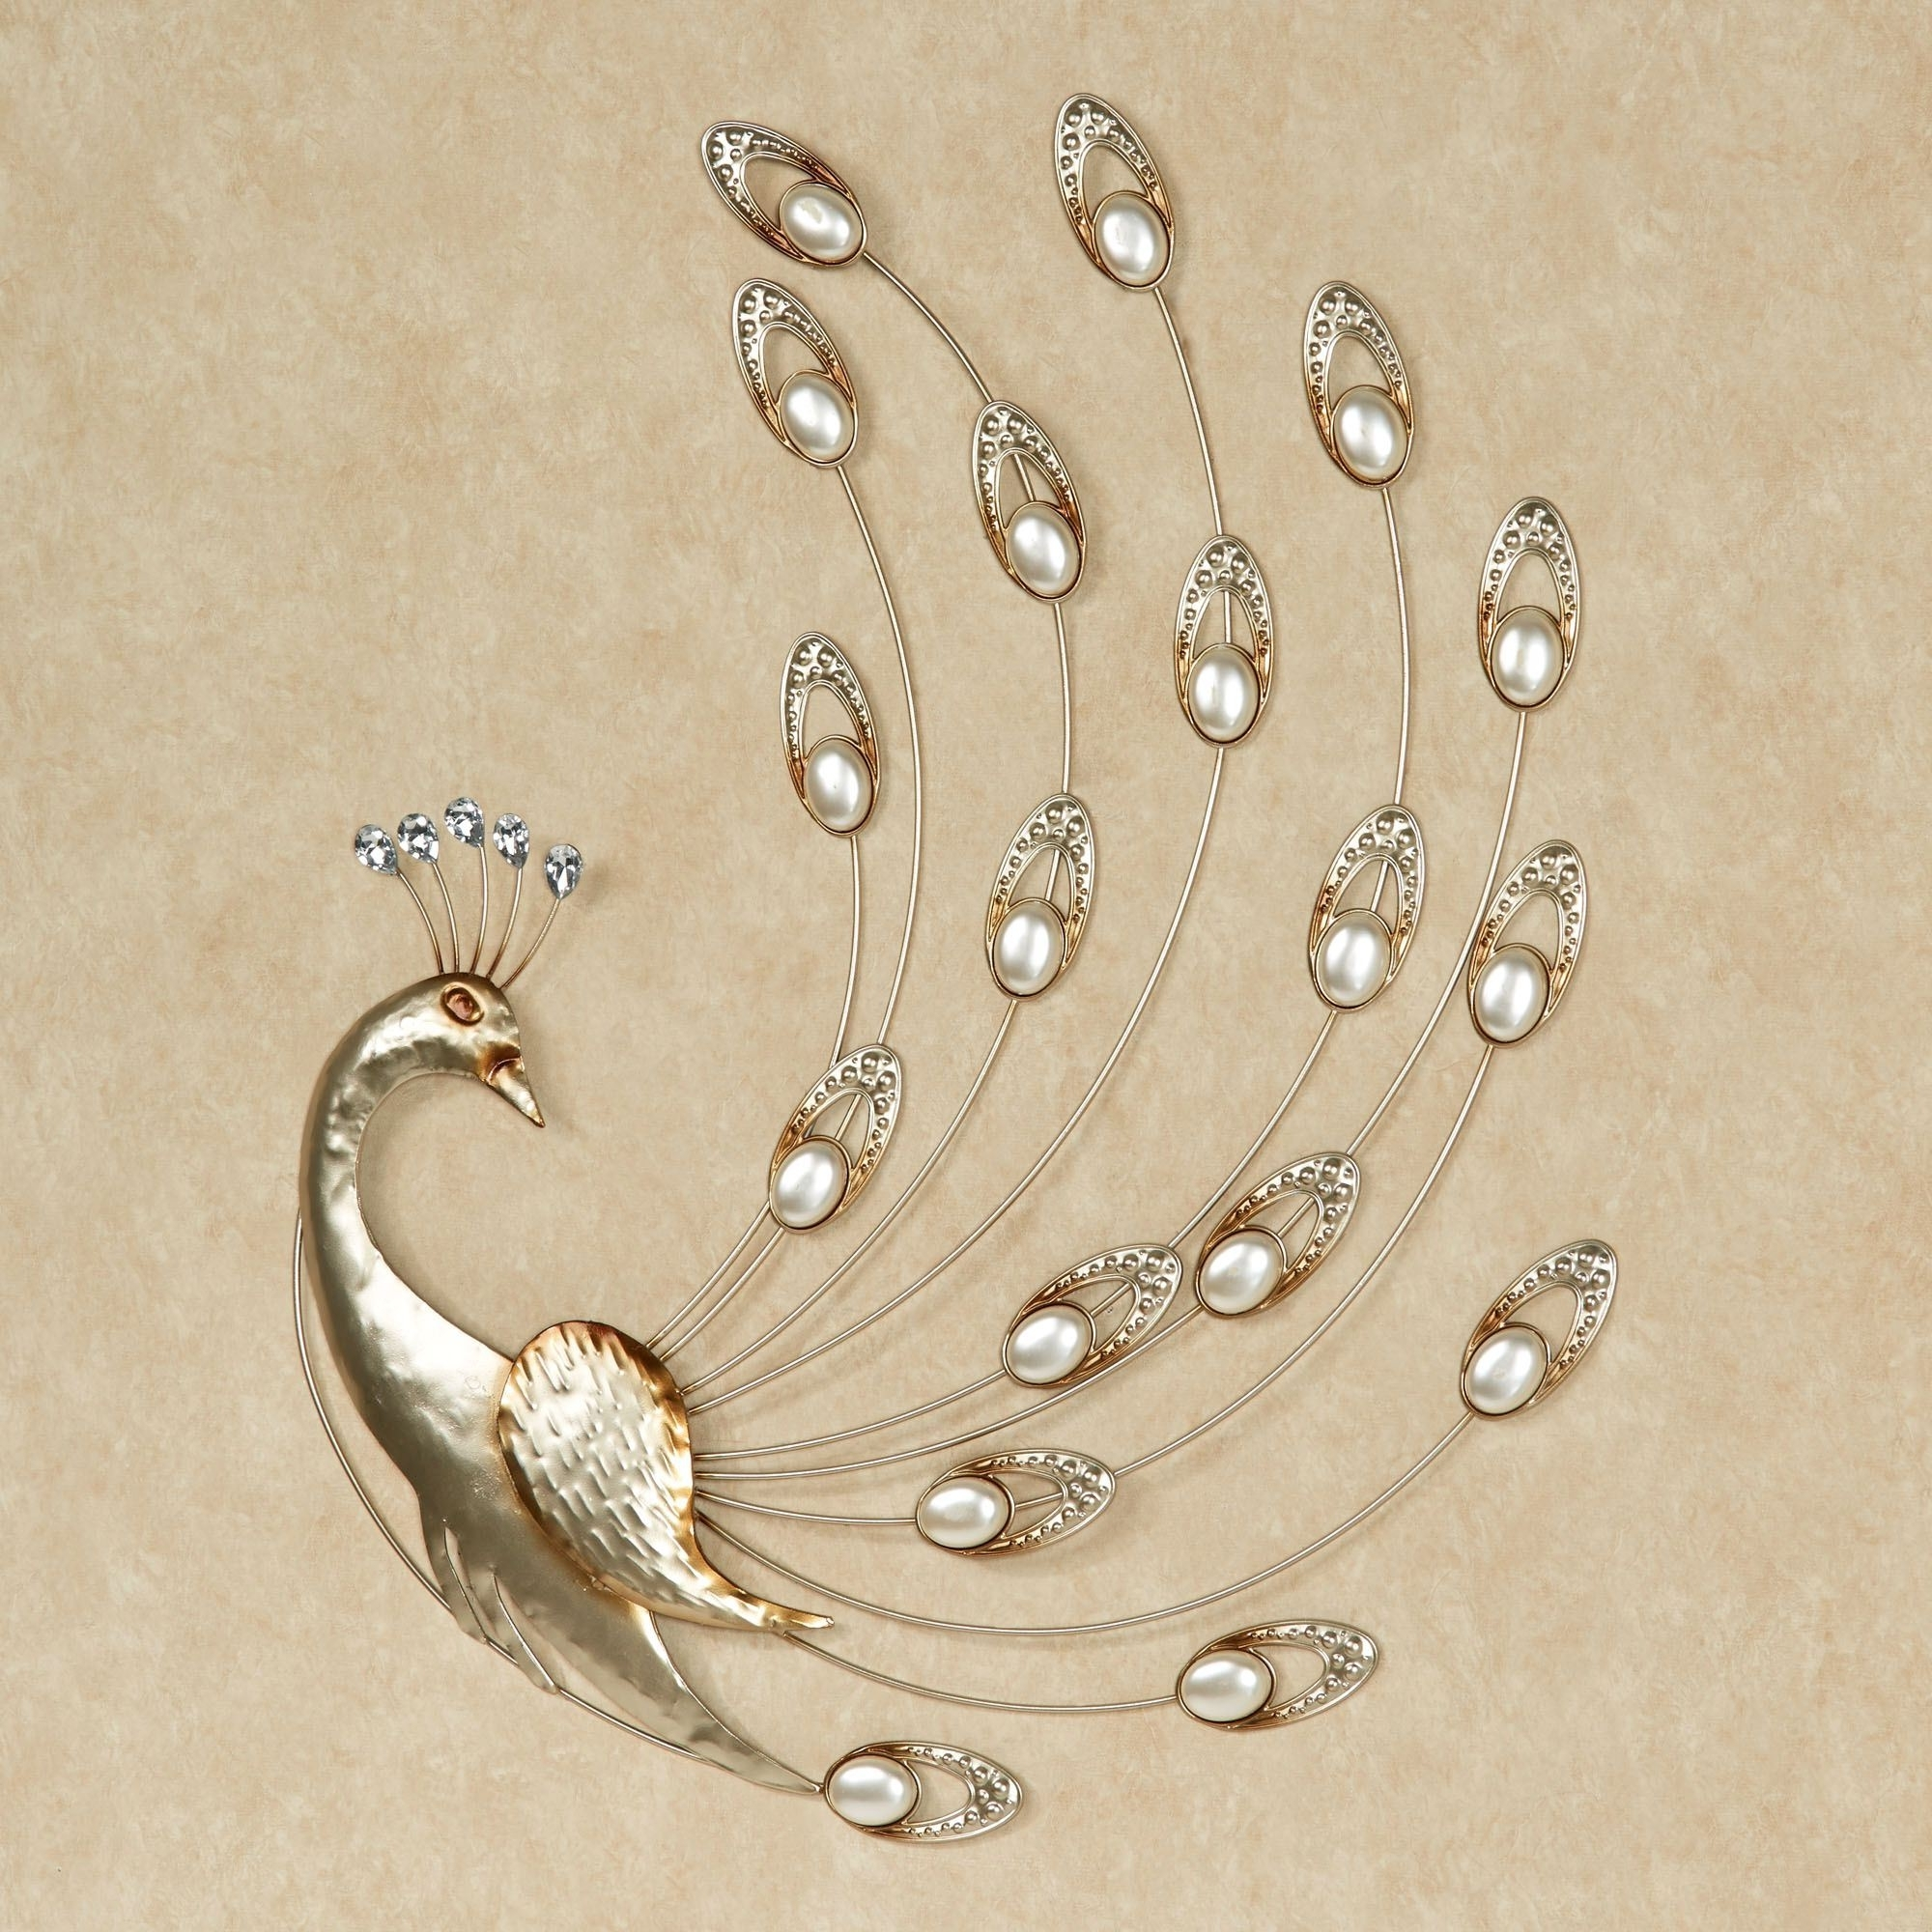 Julietta Pearl Peacock Metal Wall Art Intended For Popular Peacock Metal Wall Art (Gallery 4 of 15)